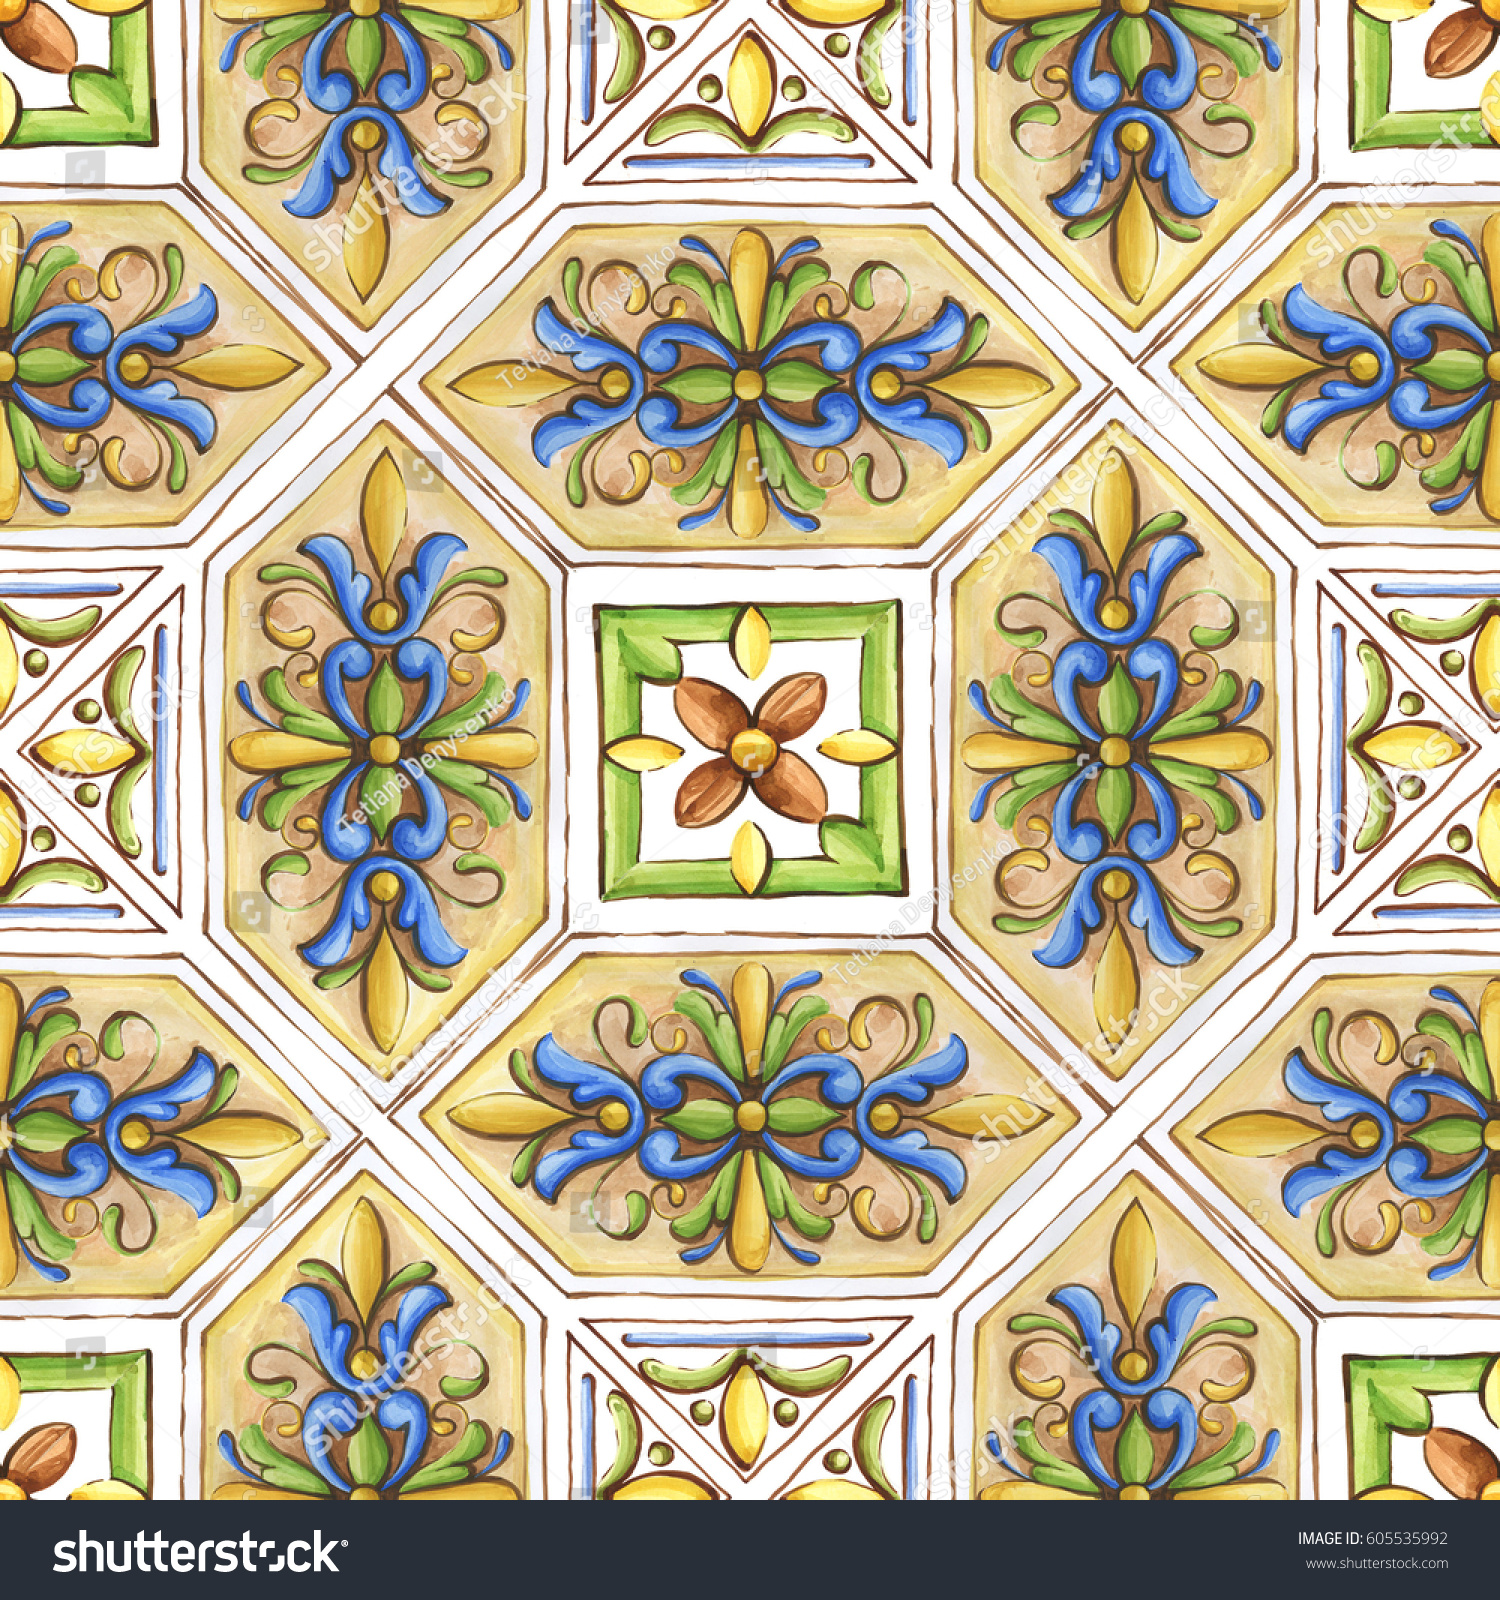 Famous Italian Ceramic Wall Art Frieze - Wall Art Collections ...